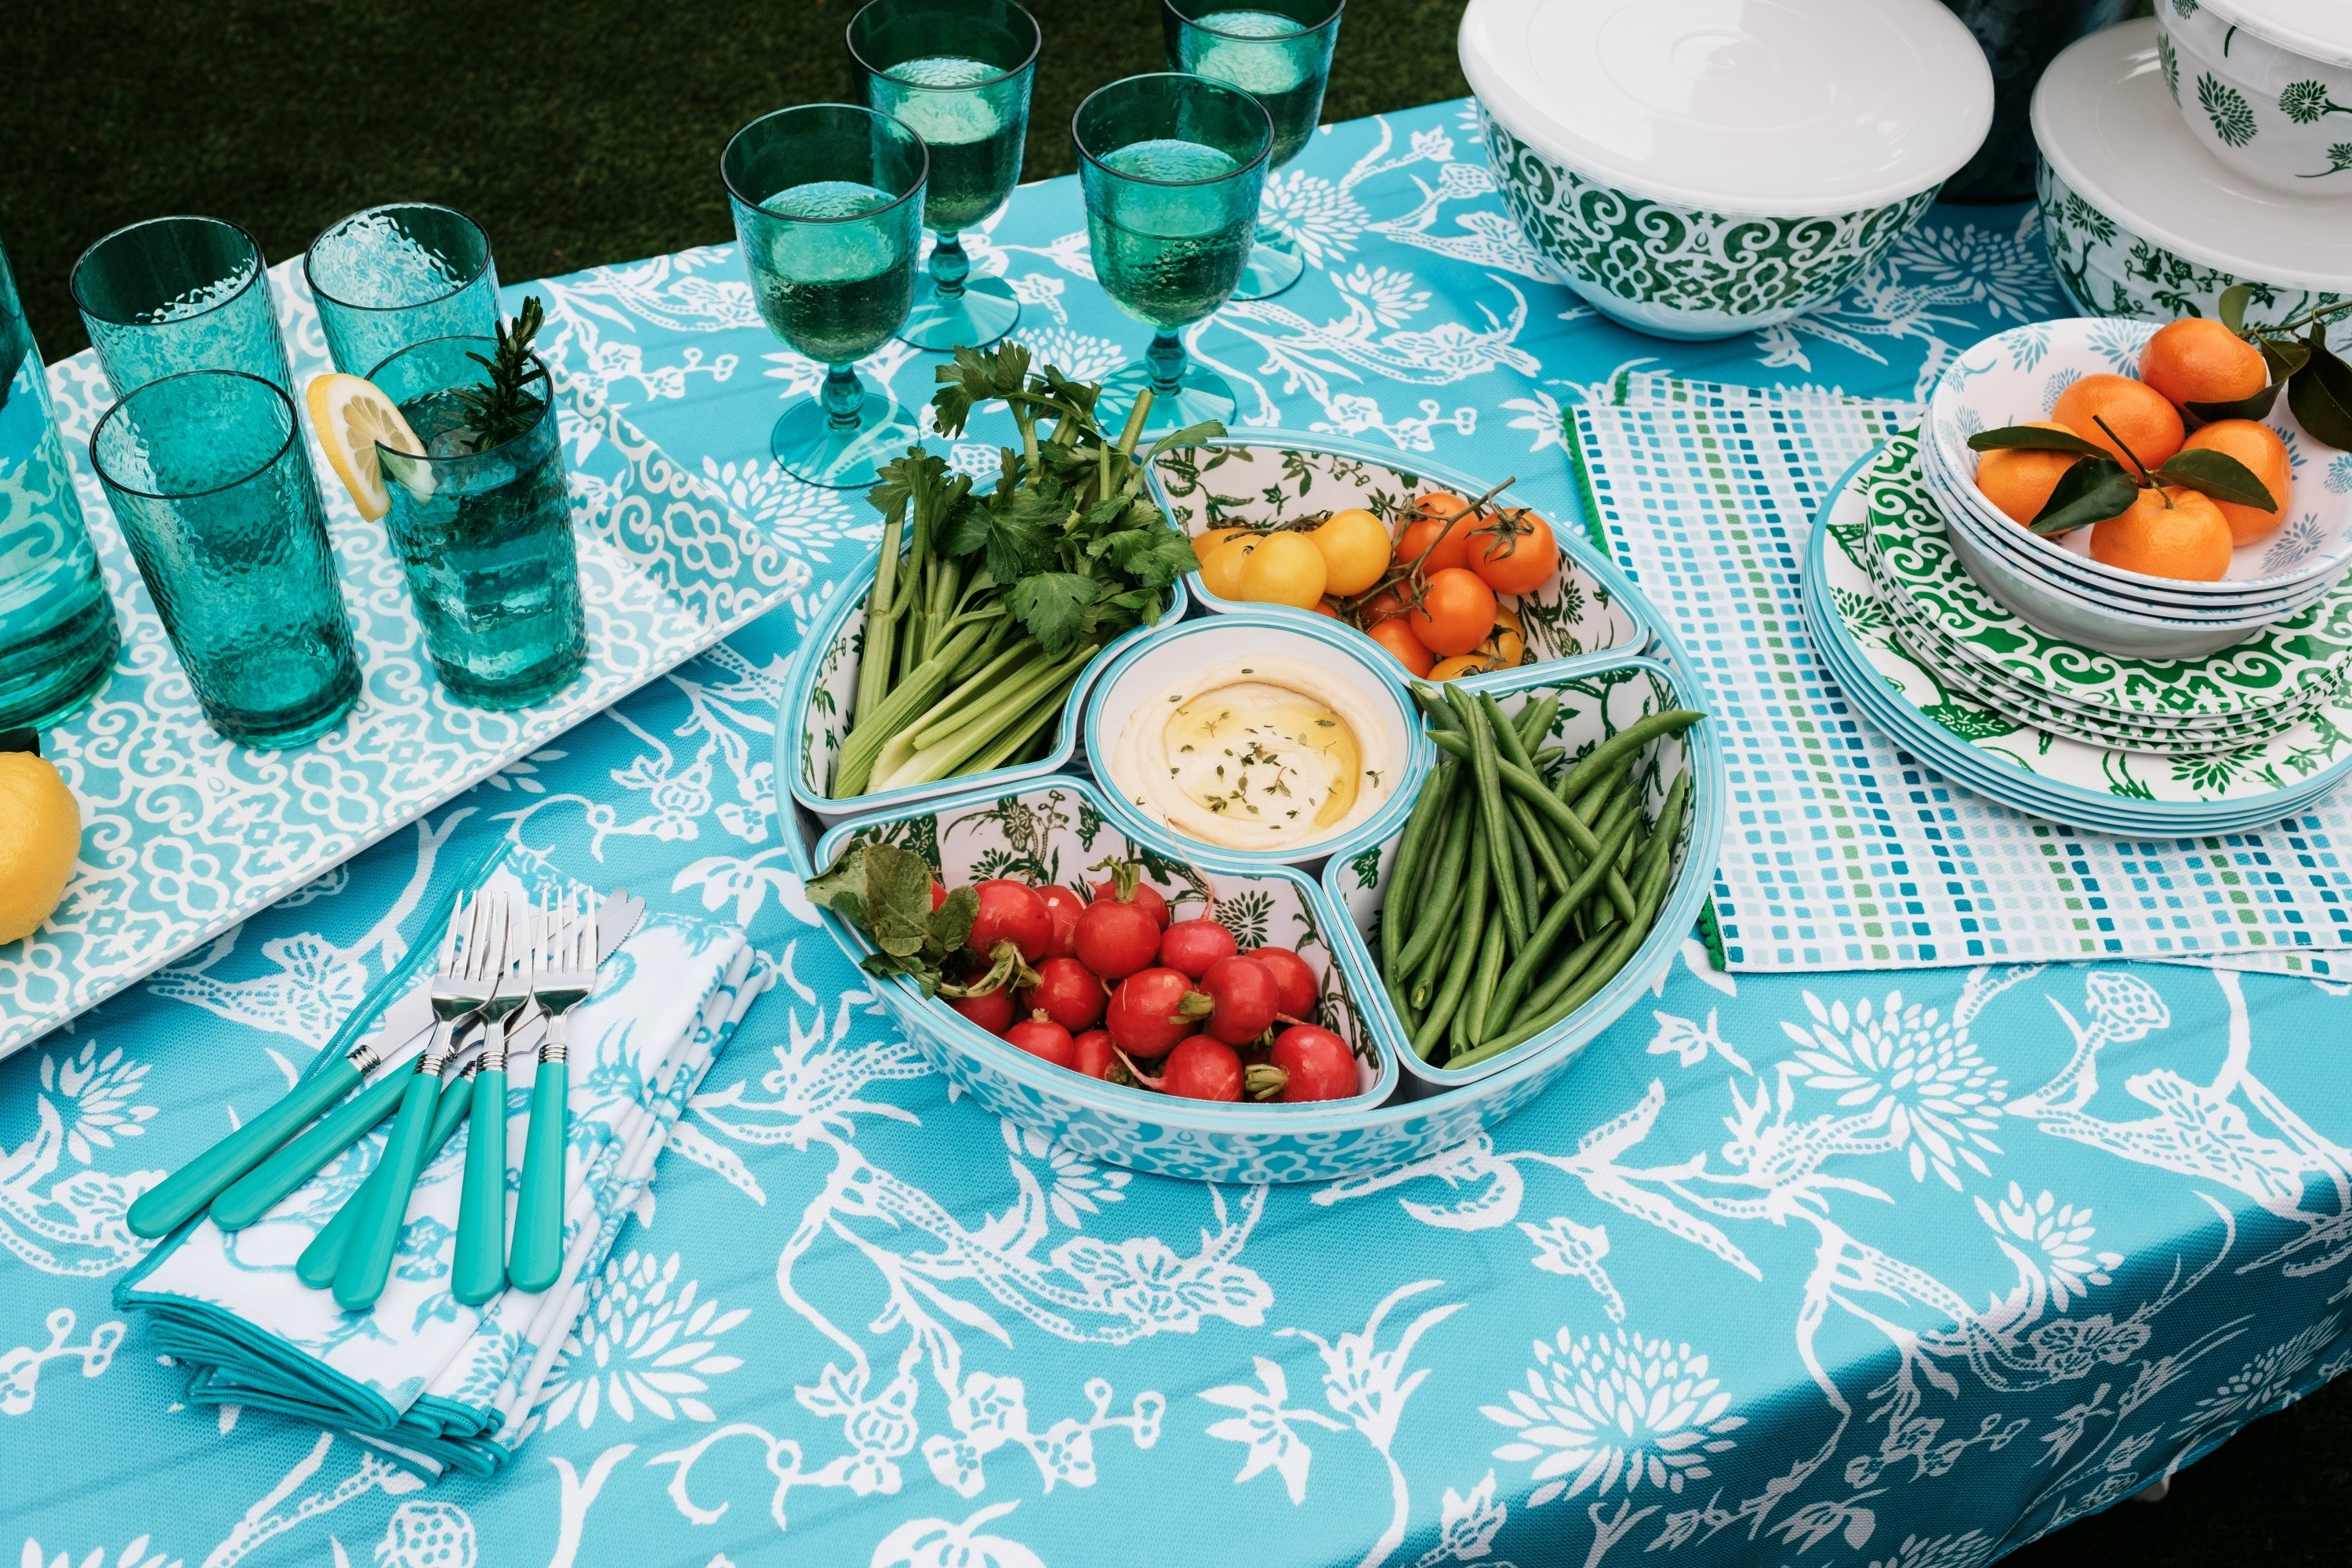 picnic table with a chip and dip server holding hummus and vegetables